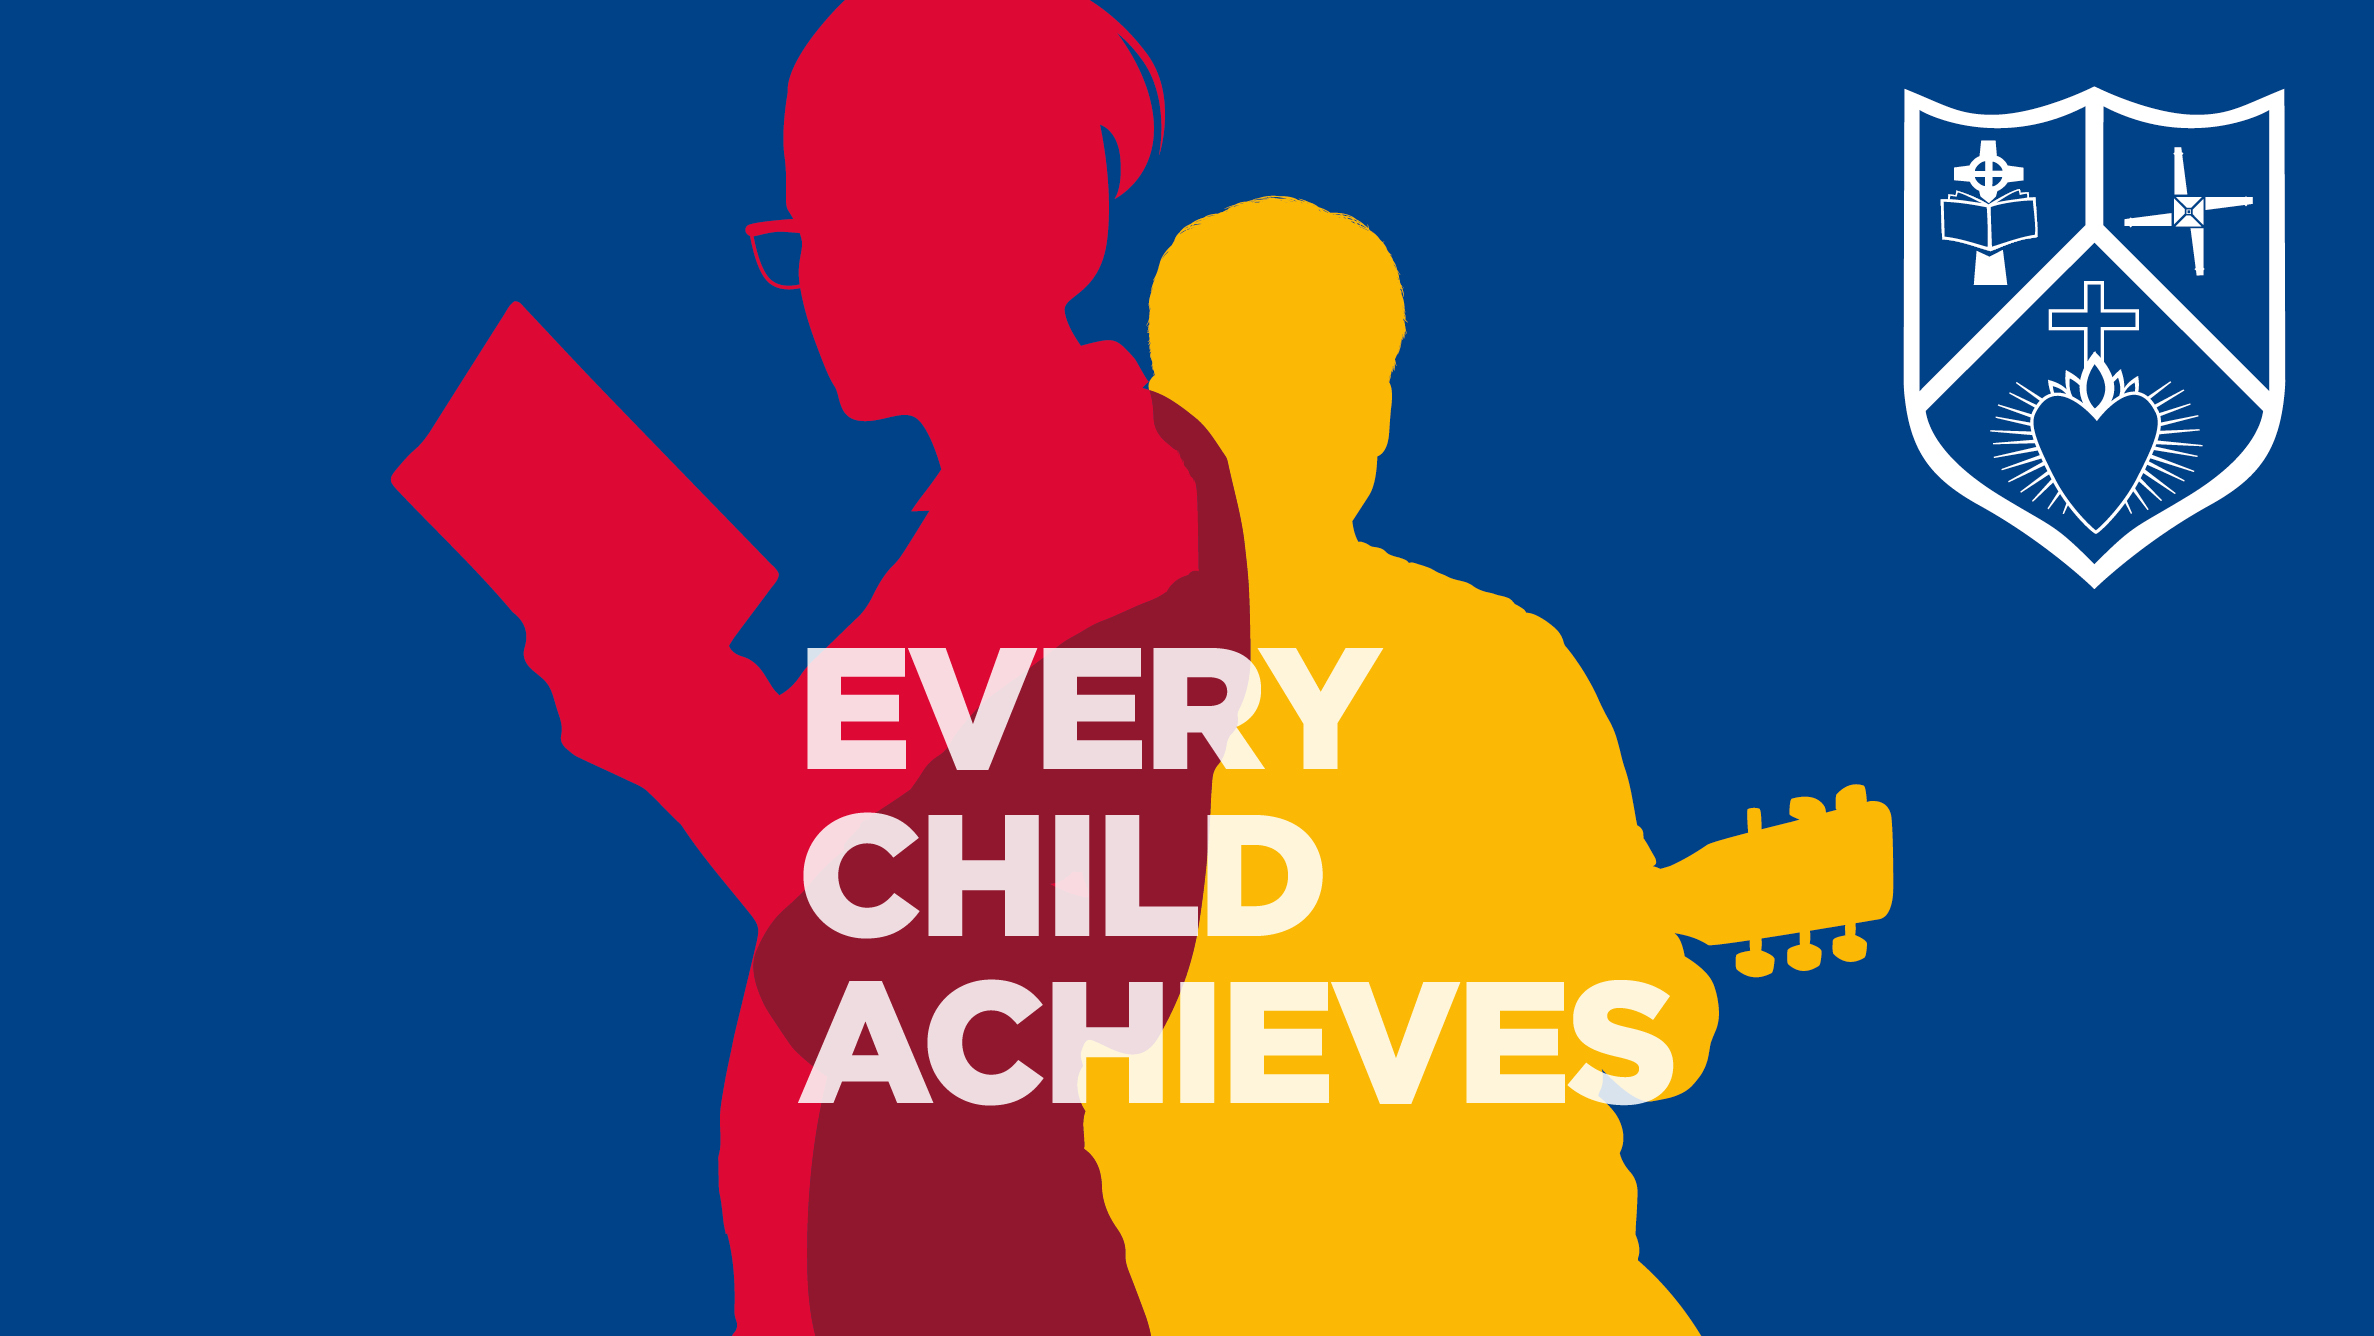 Every Child Achieves